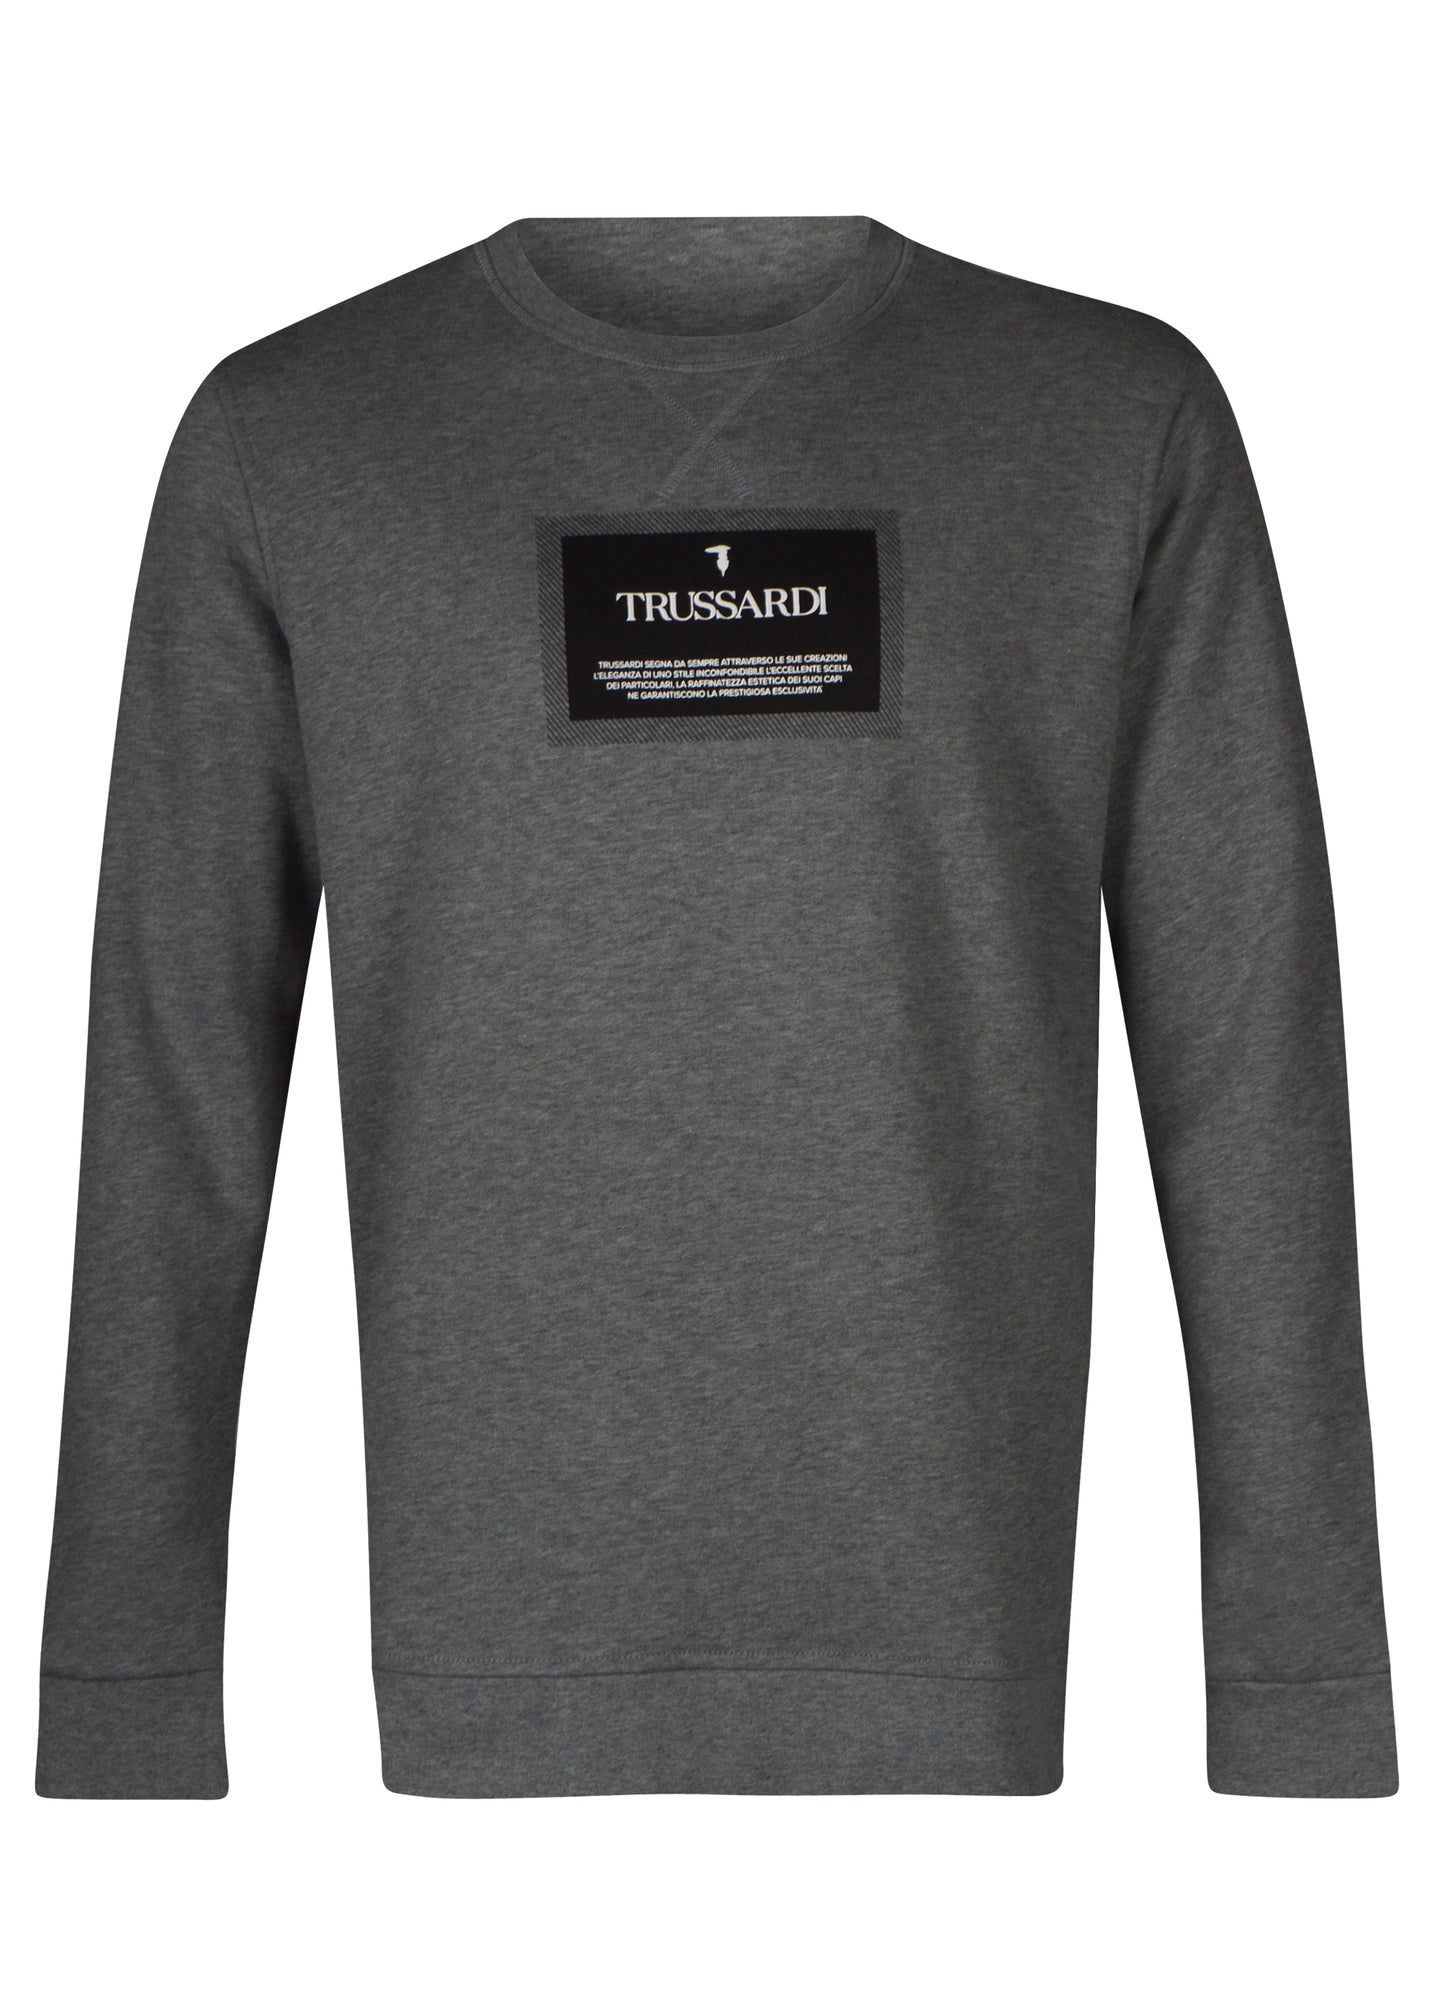 Trusardi- Crewneck Sweatshirt Box Logo Trussardi Badge - 100332 - Grey